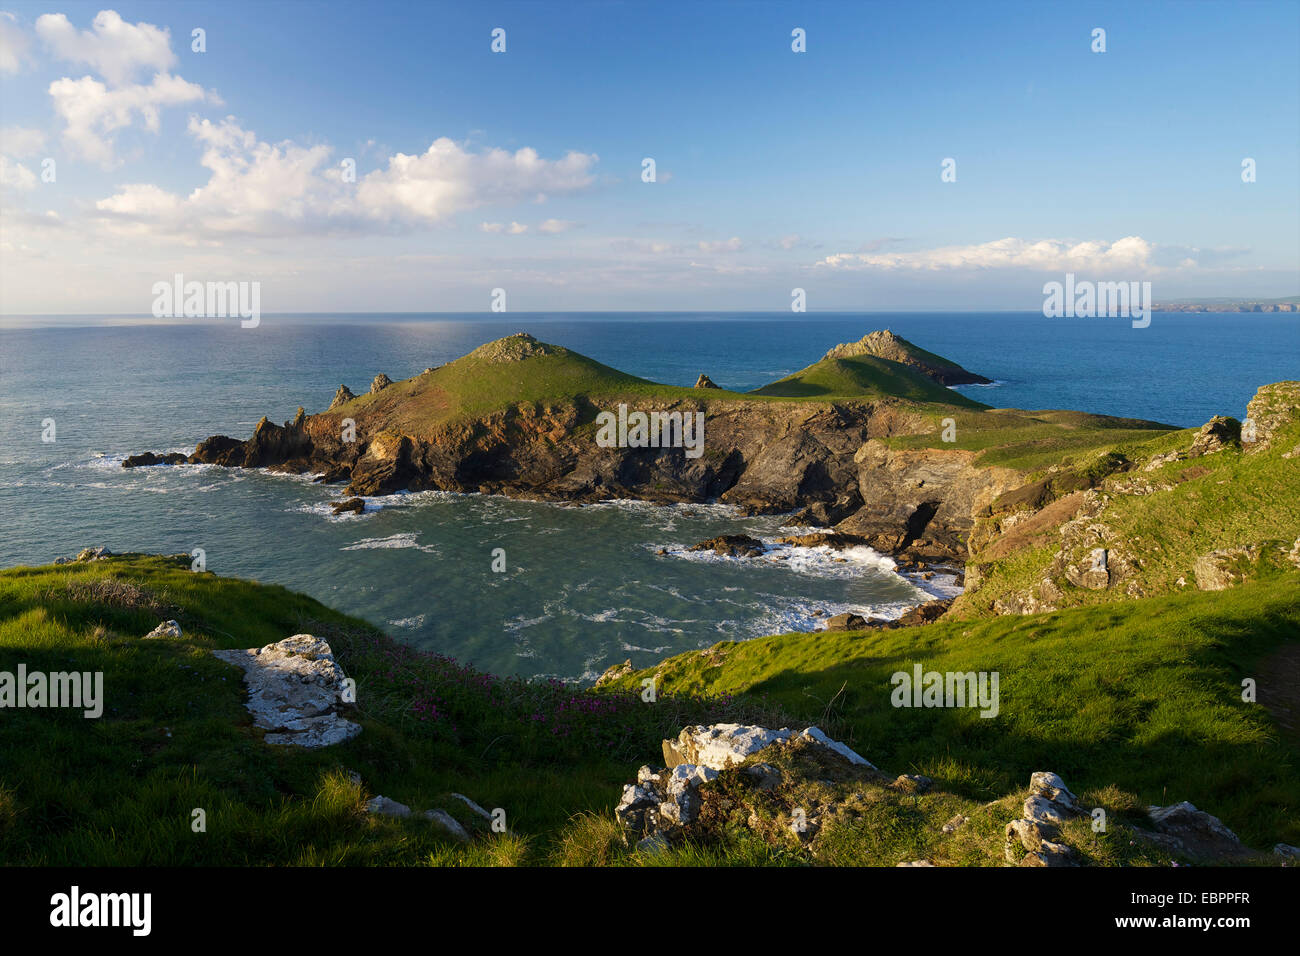 Views of Atlantic surf at Rumps Point, Pentire Headland, North Cornwall, England, United Kingdom, Europe - Stock Image